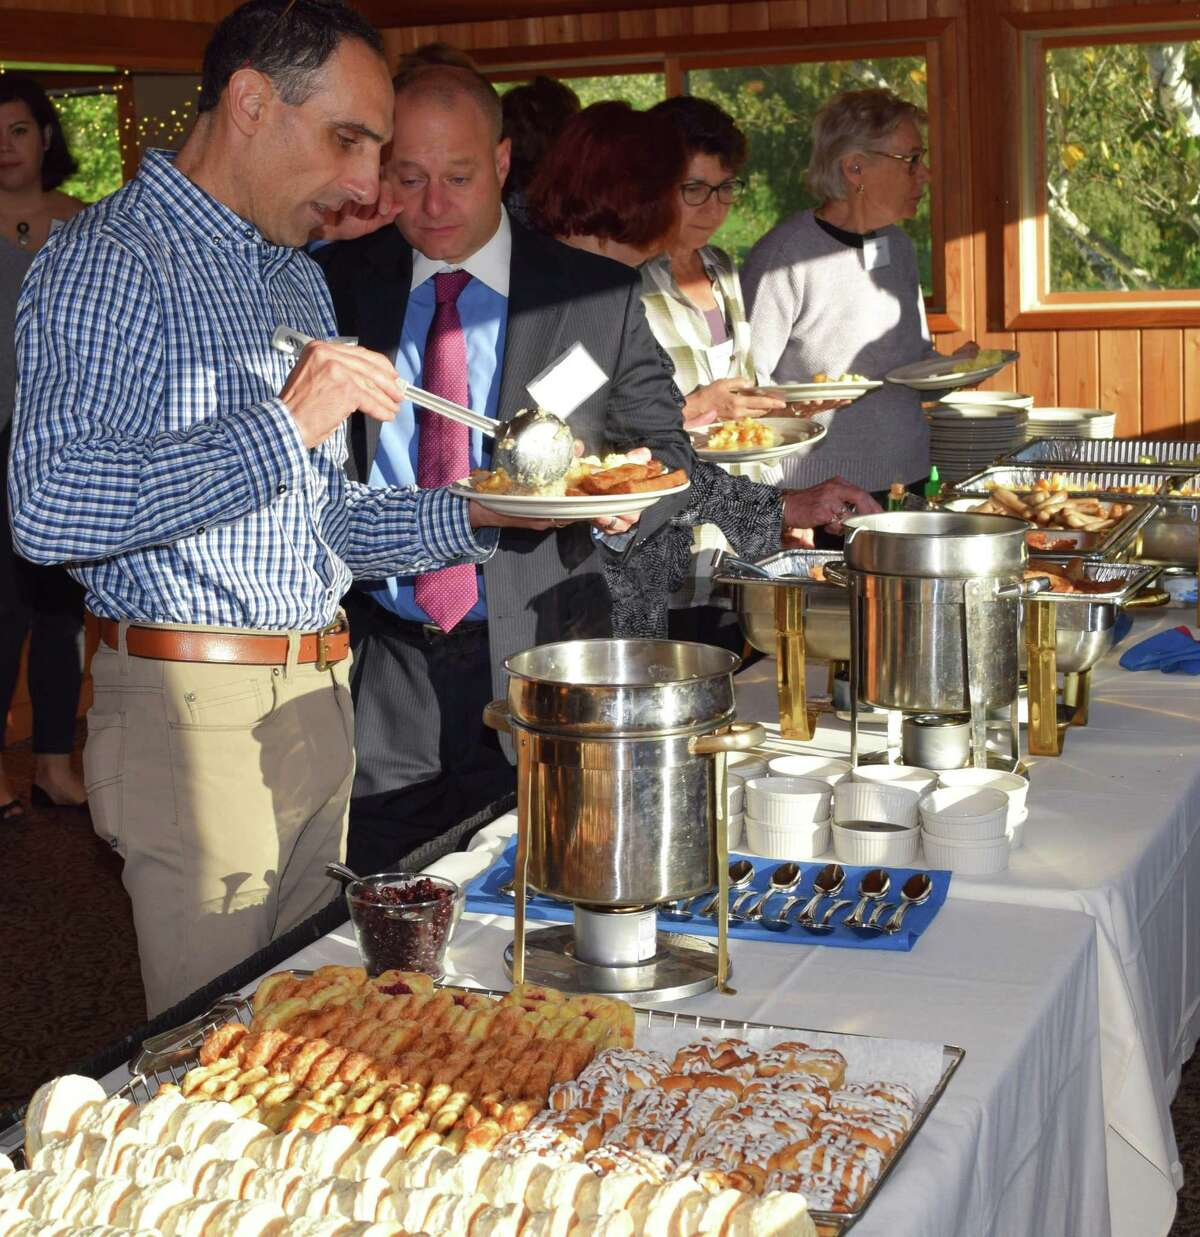 Guests Mike Nahom, foreground, and Dean Aita make their way through the buffet line during the event.